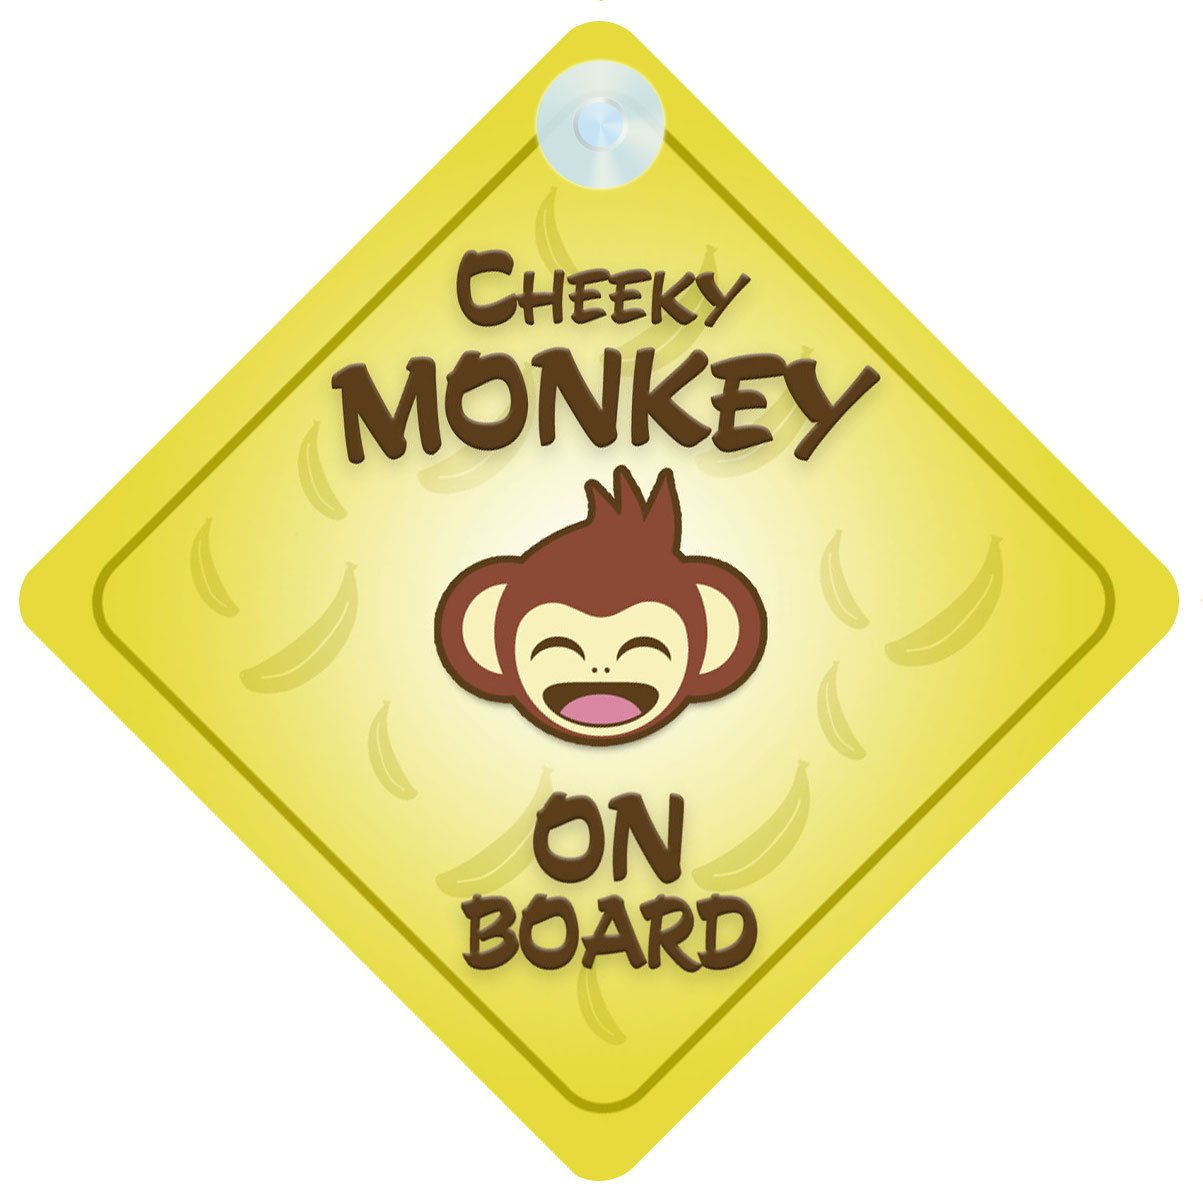 Cheeky/ Monkey On Board Car Sign Car New Baby/ by Child Gift/ Present/ Baby Shower Surprise by mybabyonboard UK B00IOS3OOY, ビィネットショップ:2c39857e --- ijpba.info